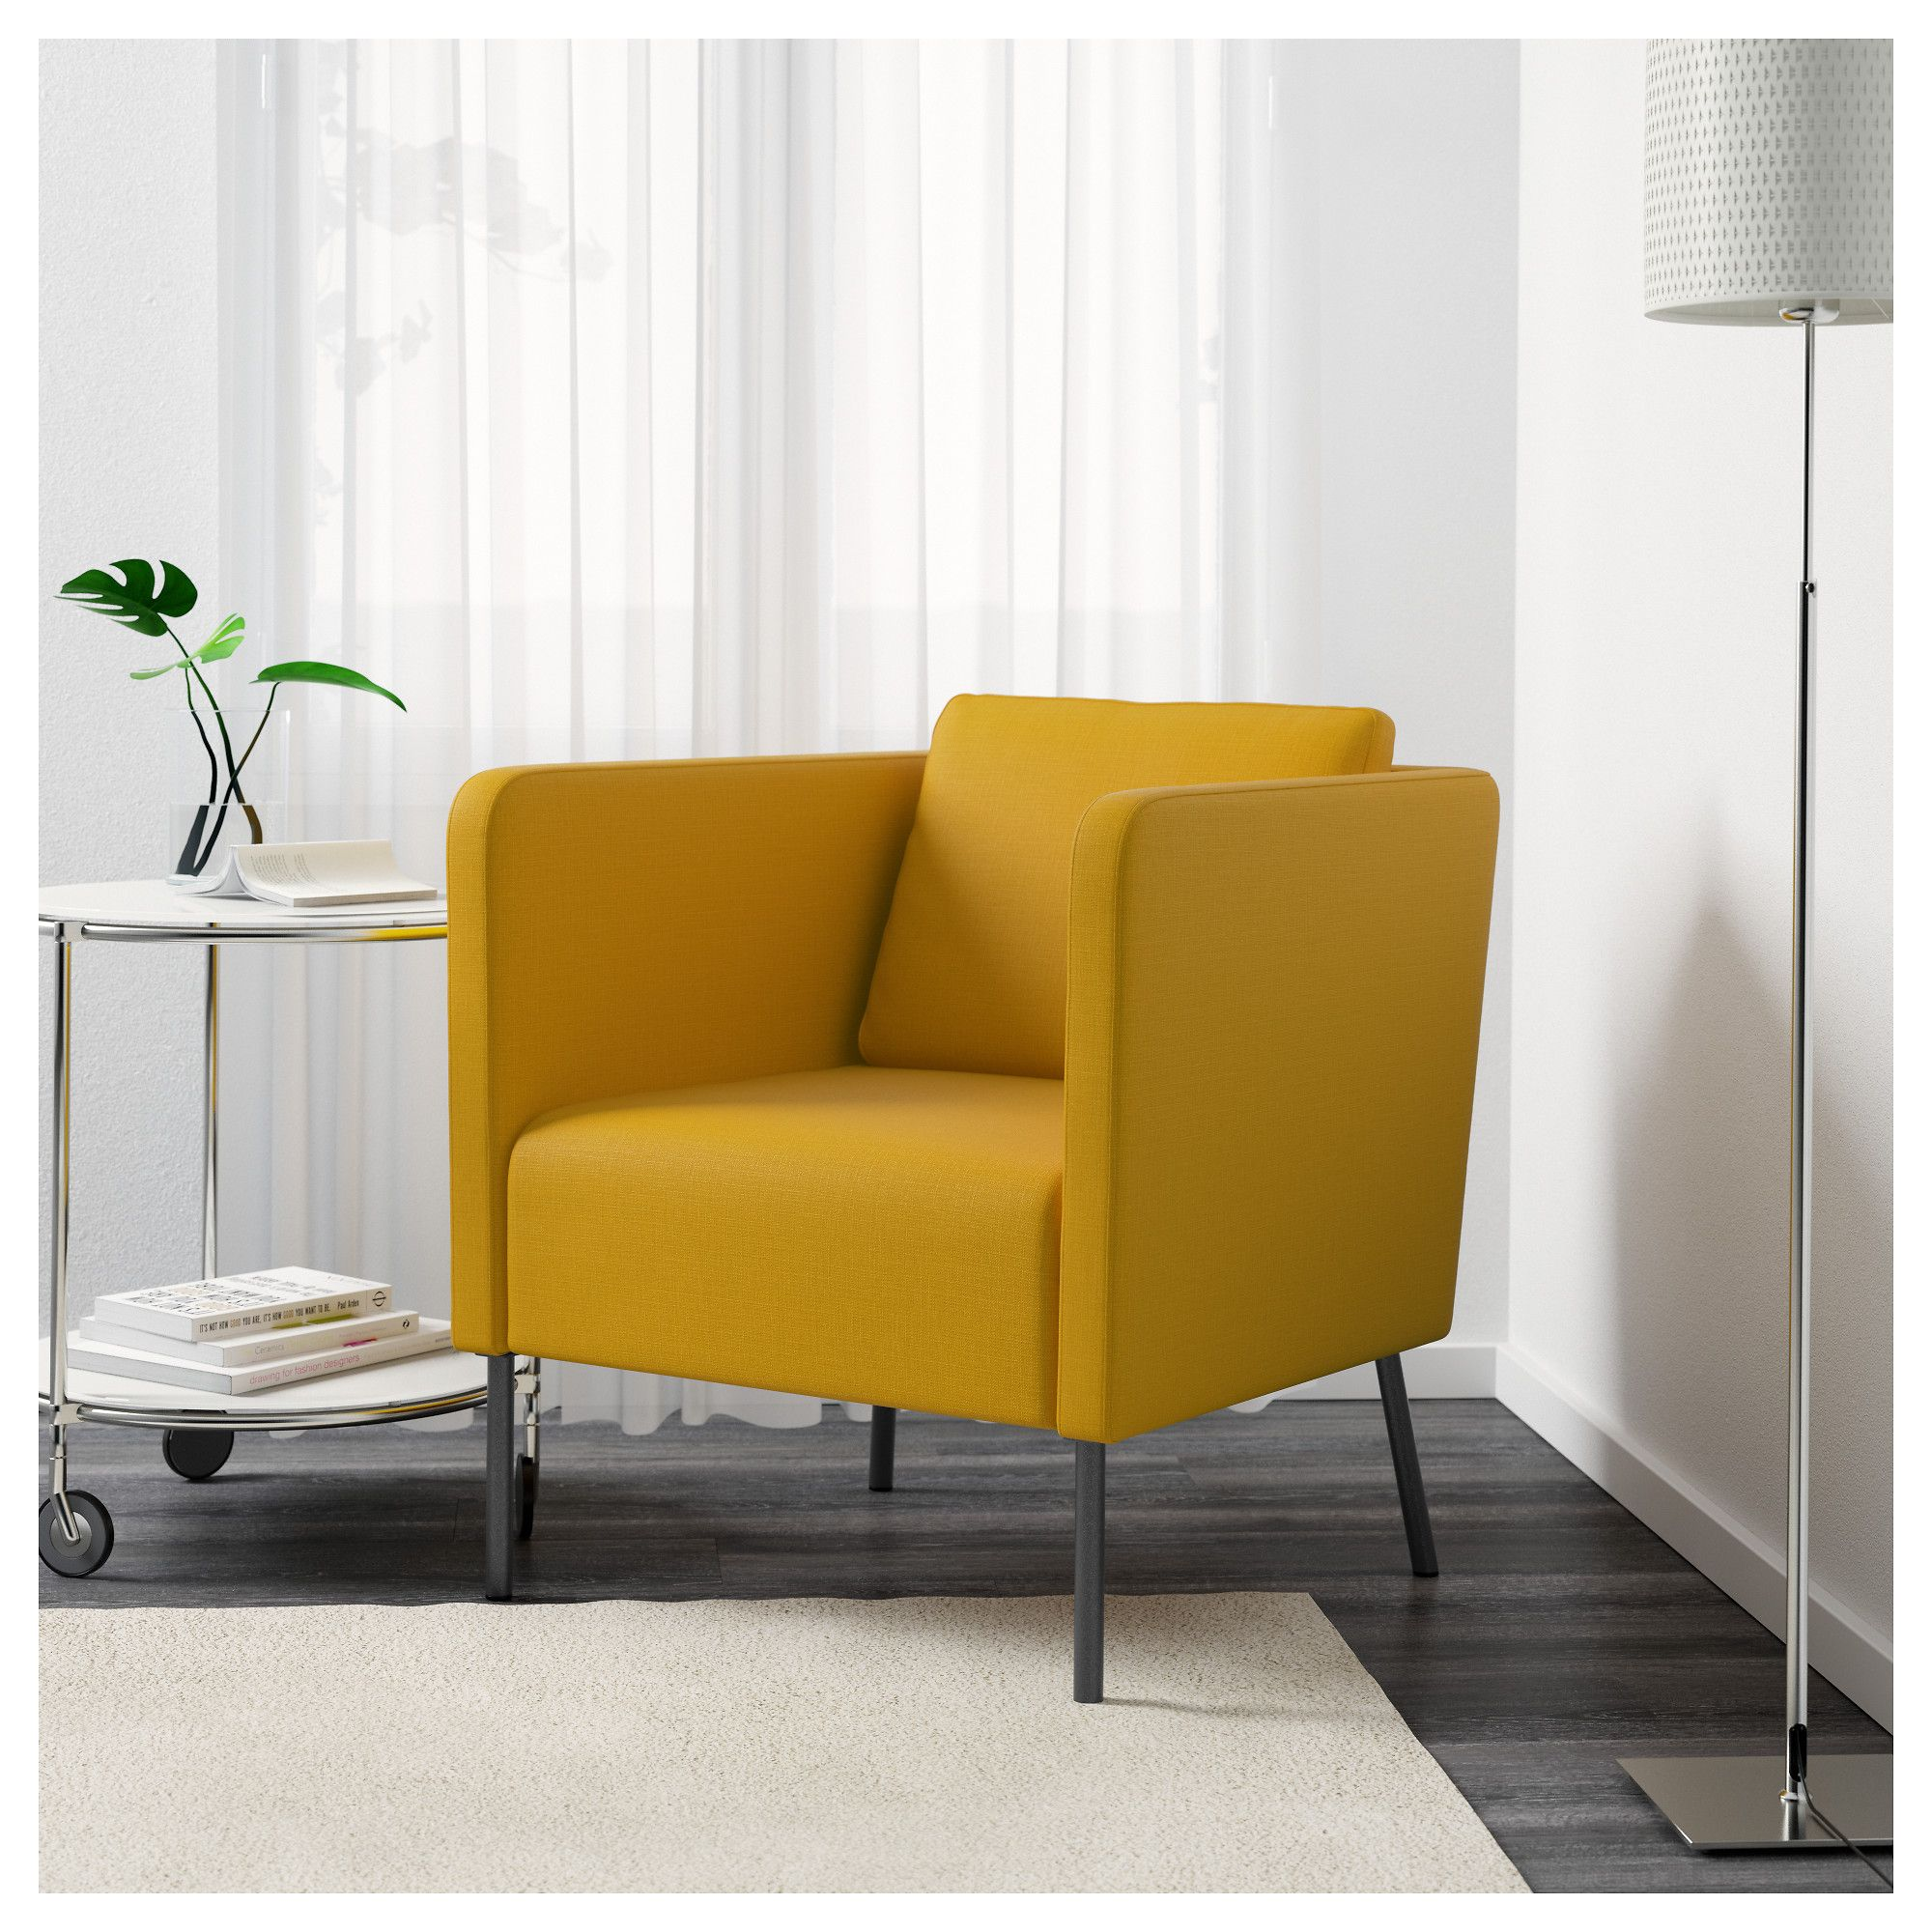 Ekero Skiftebo Yellow Armchair Ikea Yellow Armchair Living Room Accent Chair Bedroom Armchair